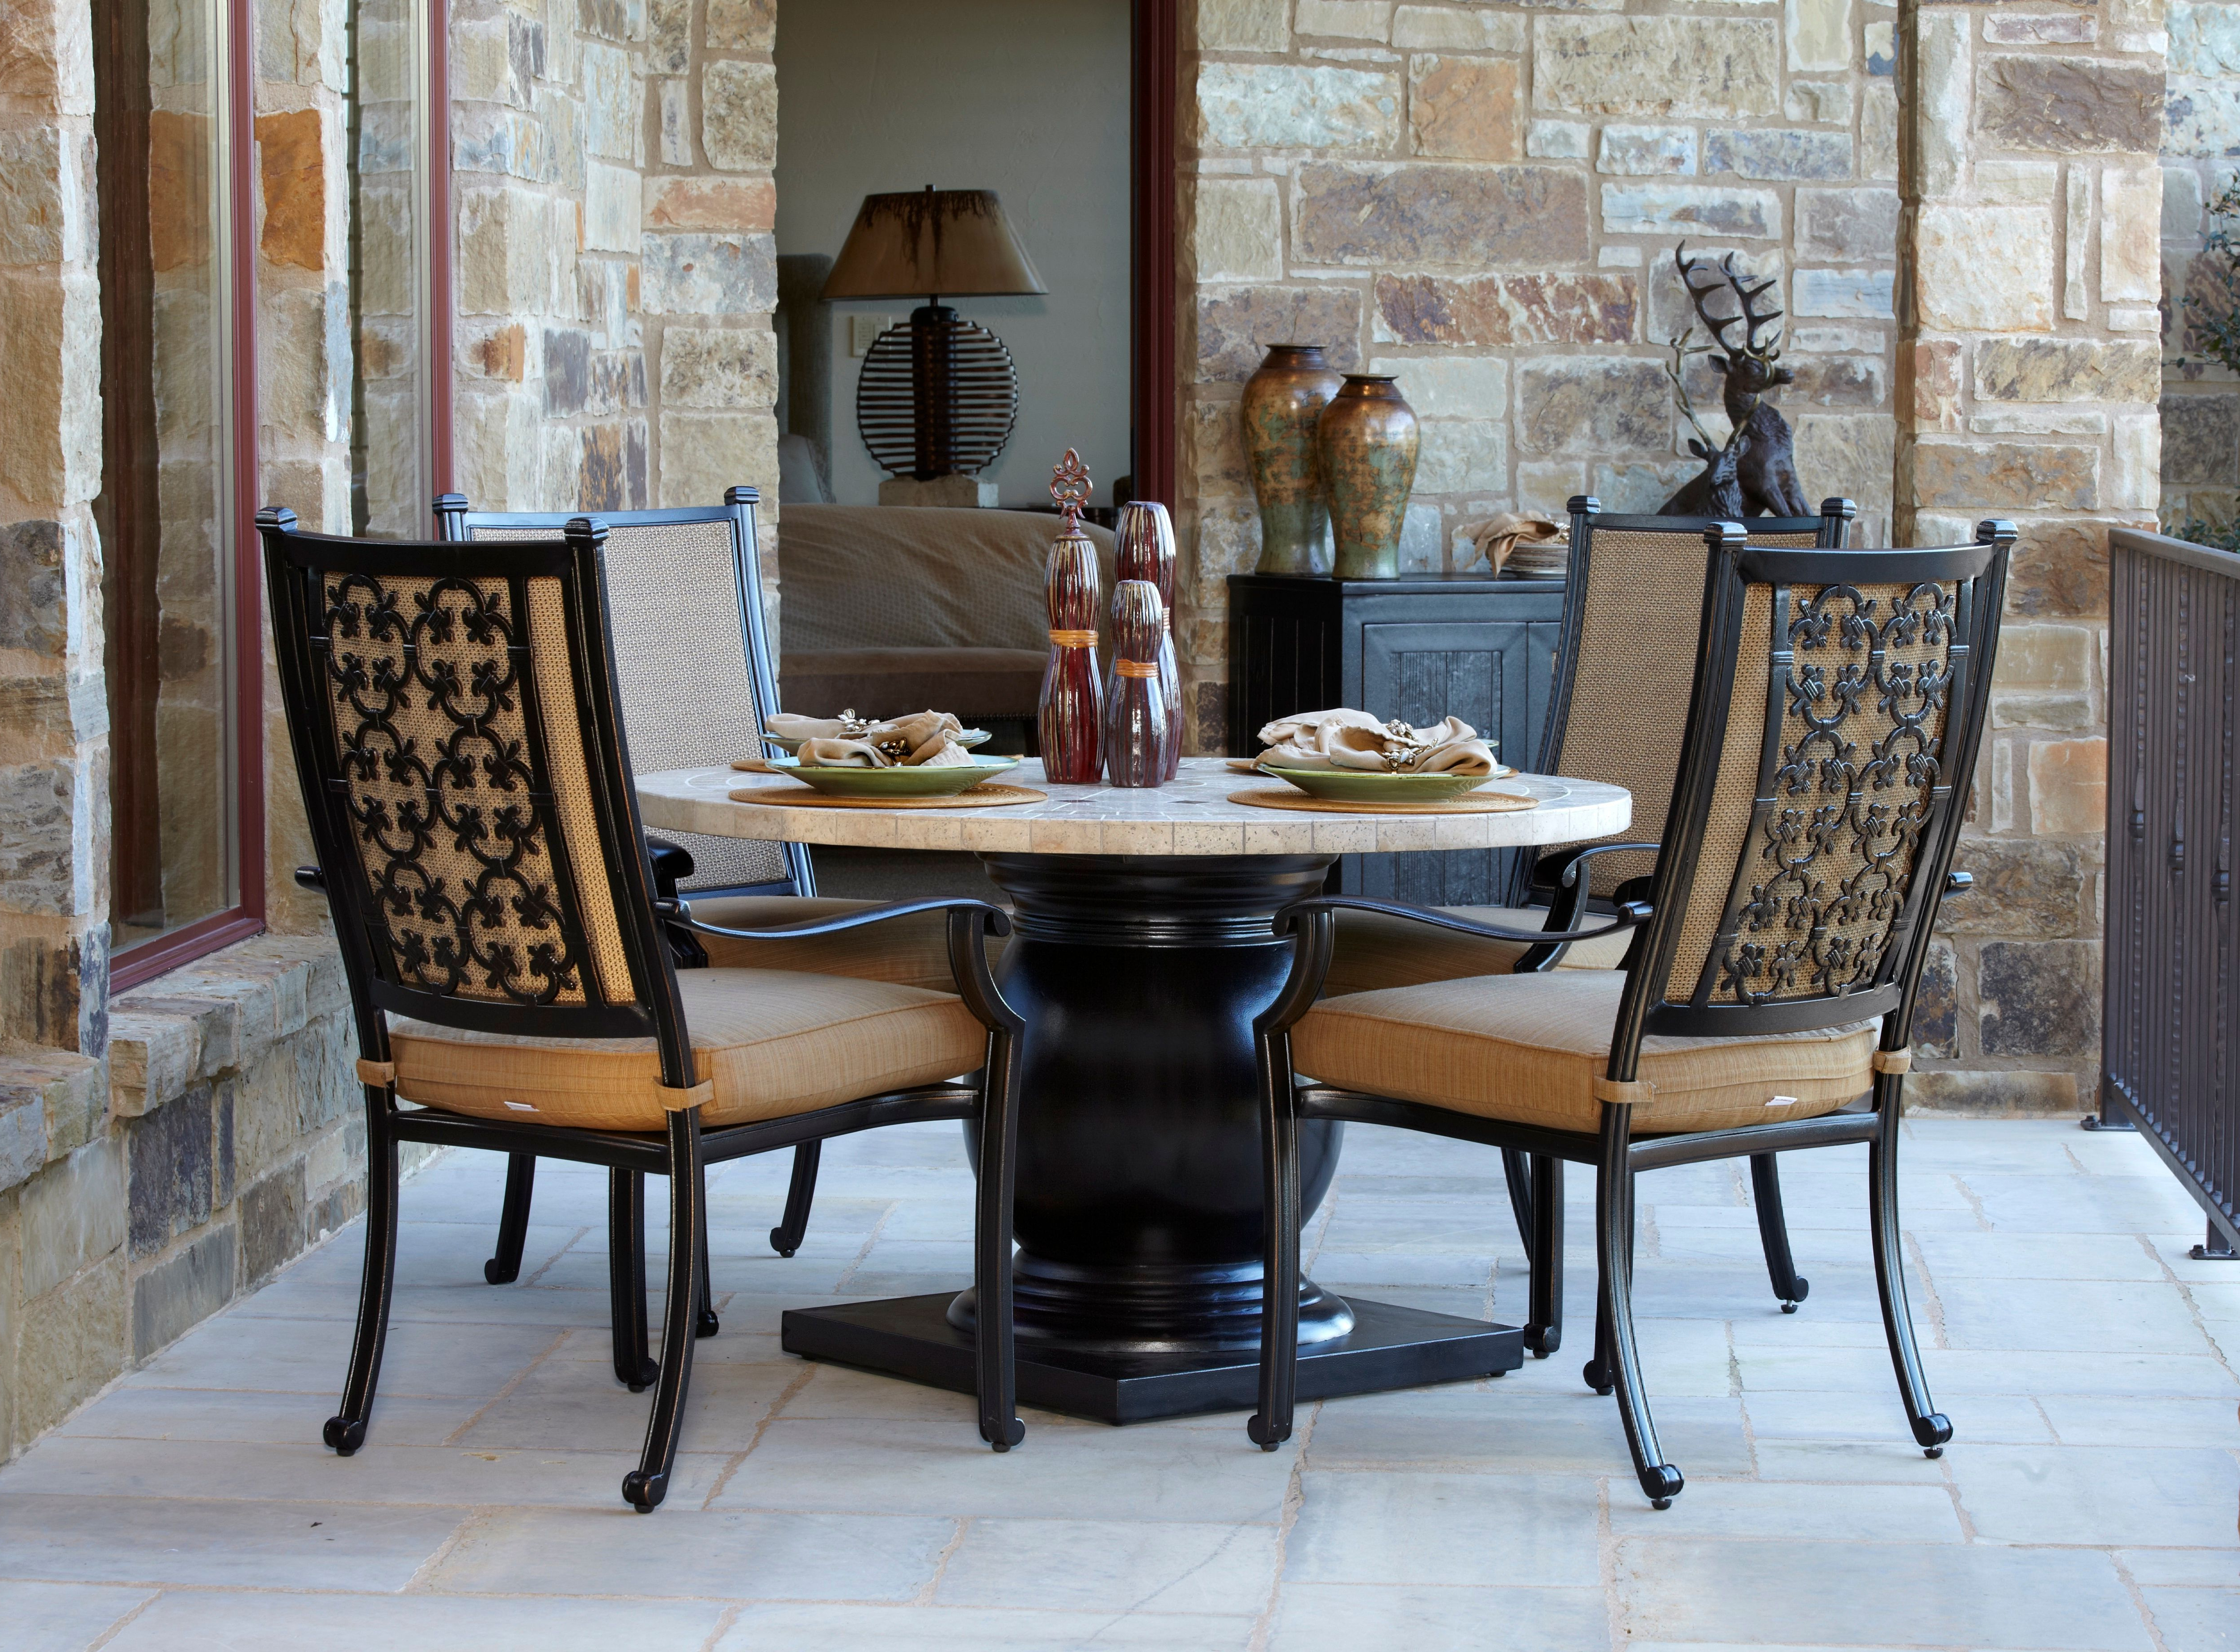 Tivoli 5 Piece Sling Dining Set Throughout Most Up To Date 5 Piece Dining Sets (View 25 of 25)